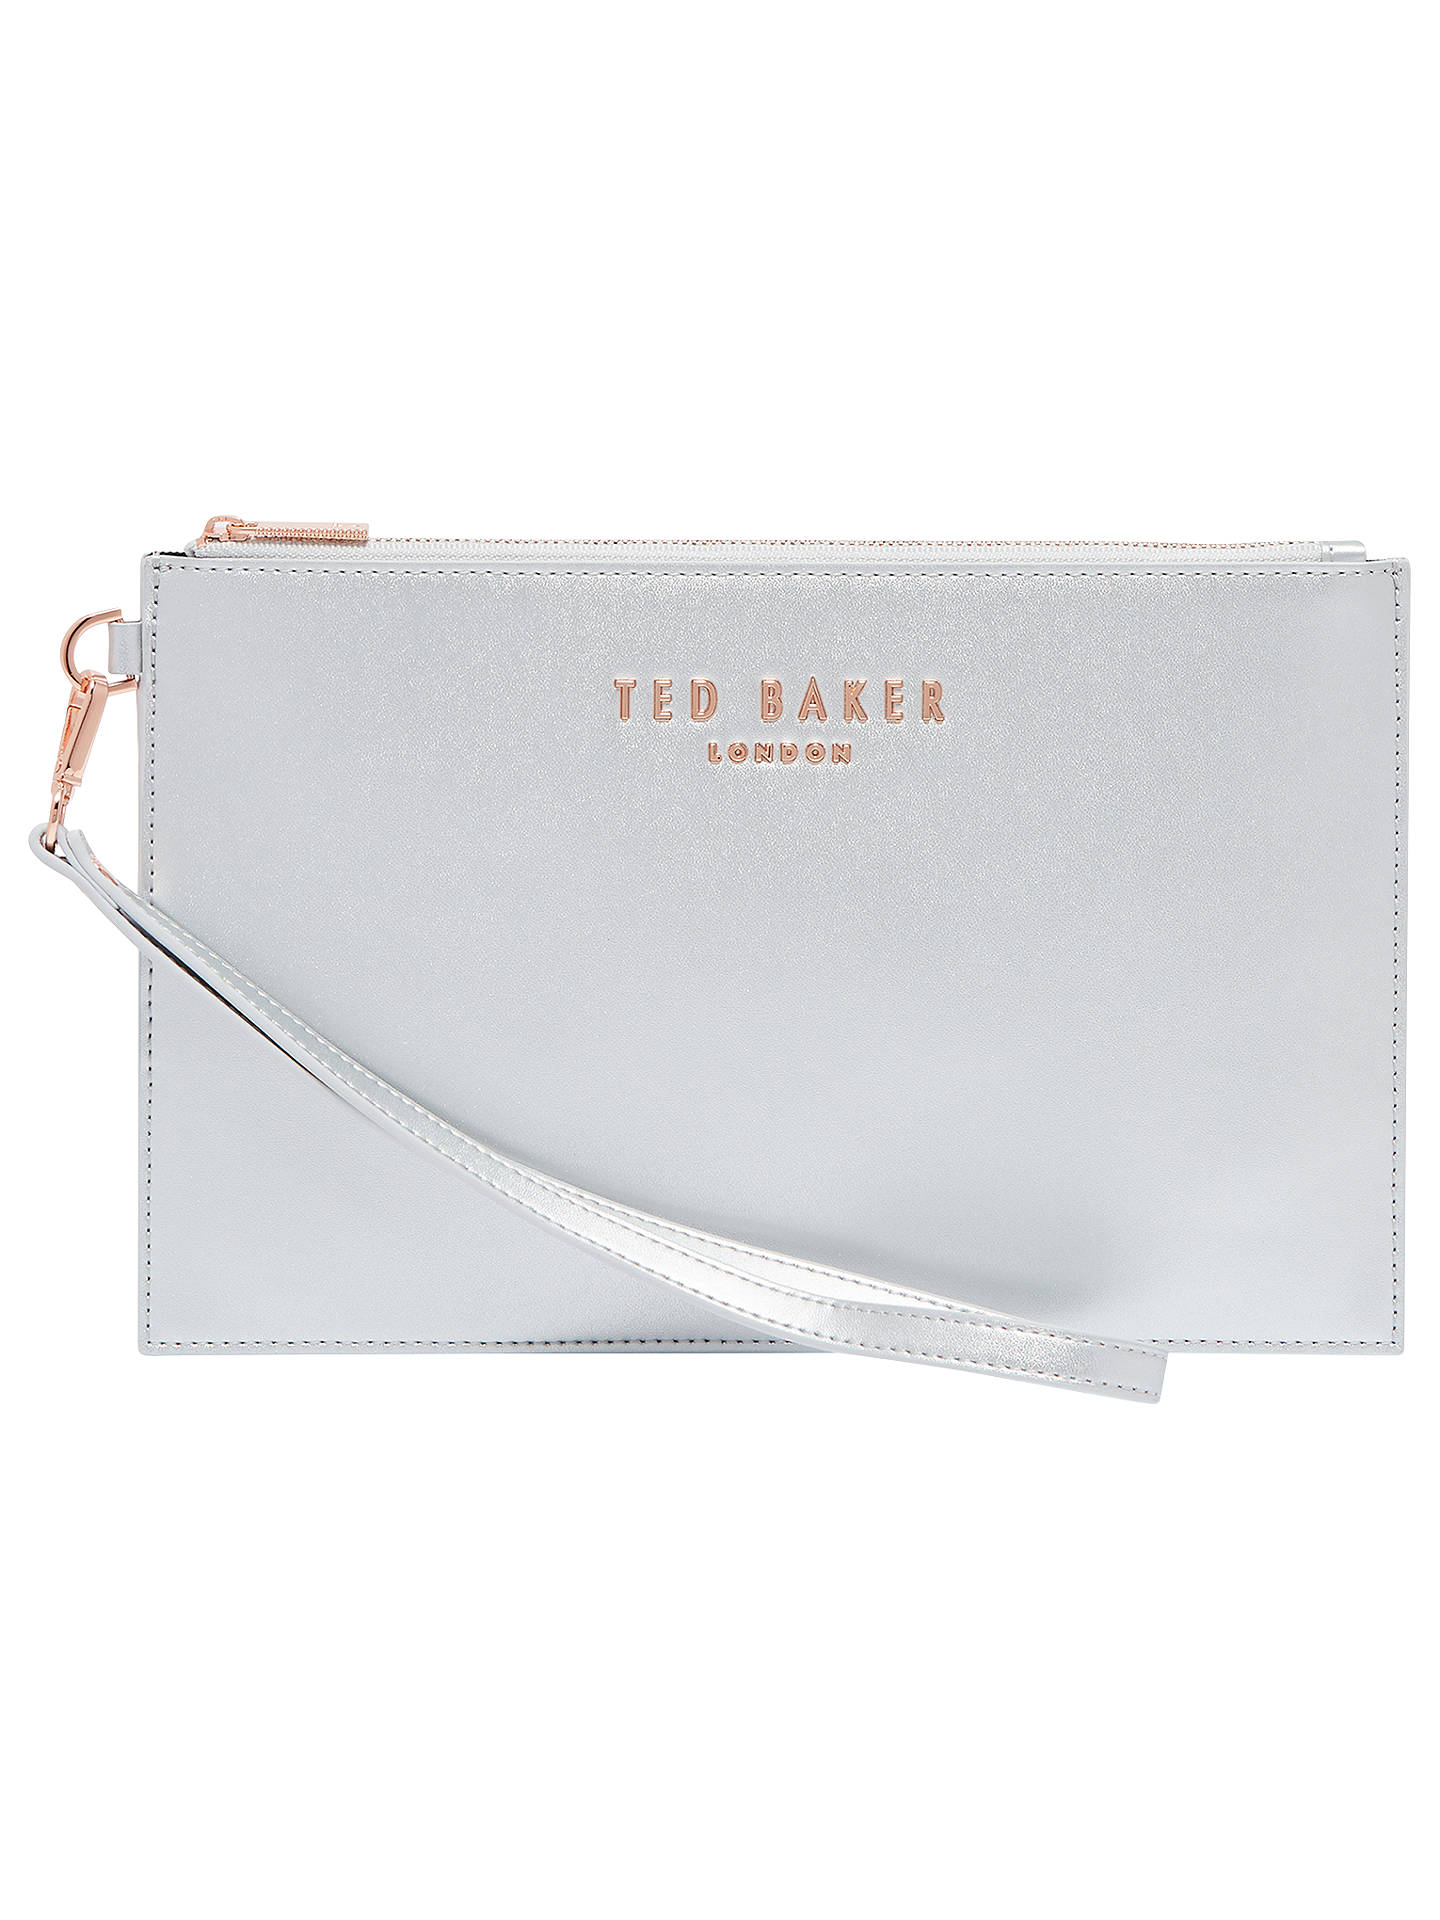 3f62be557 Buy Ted Baker Emerey Leather Wristlet Pouch, Silver Online at johnlewis.com  ...